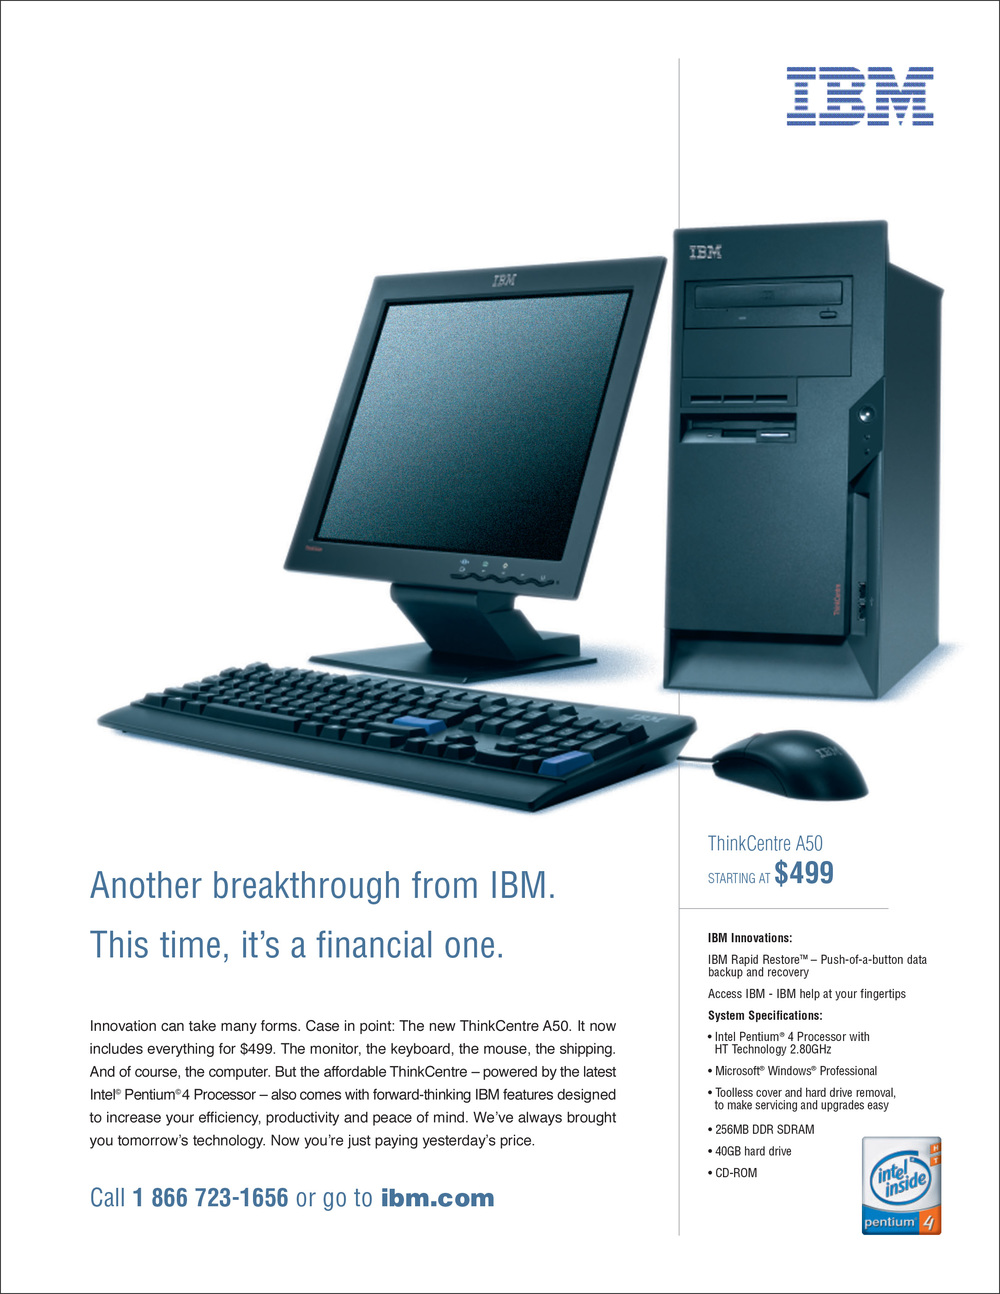 ibm-print-break-through.jpg